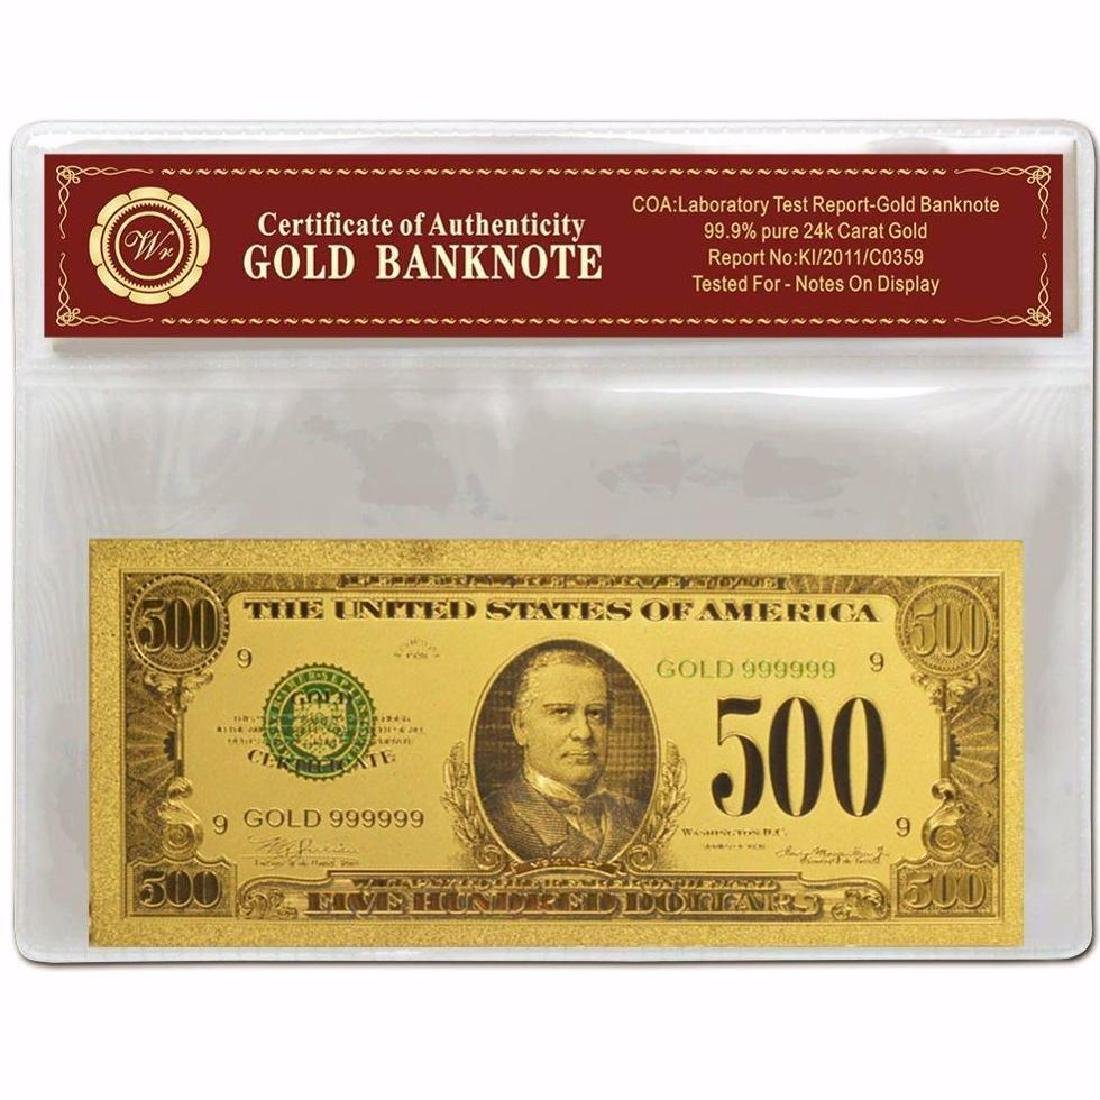 USA $500 24K Gold Clad Banknote